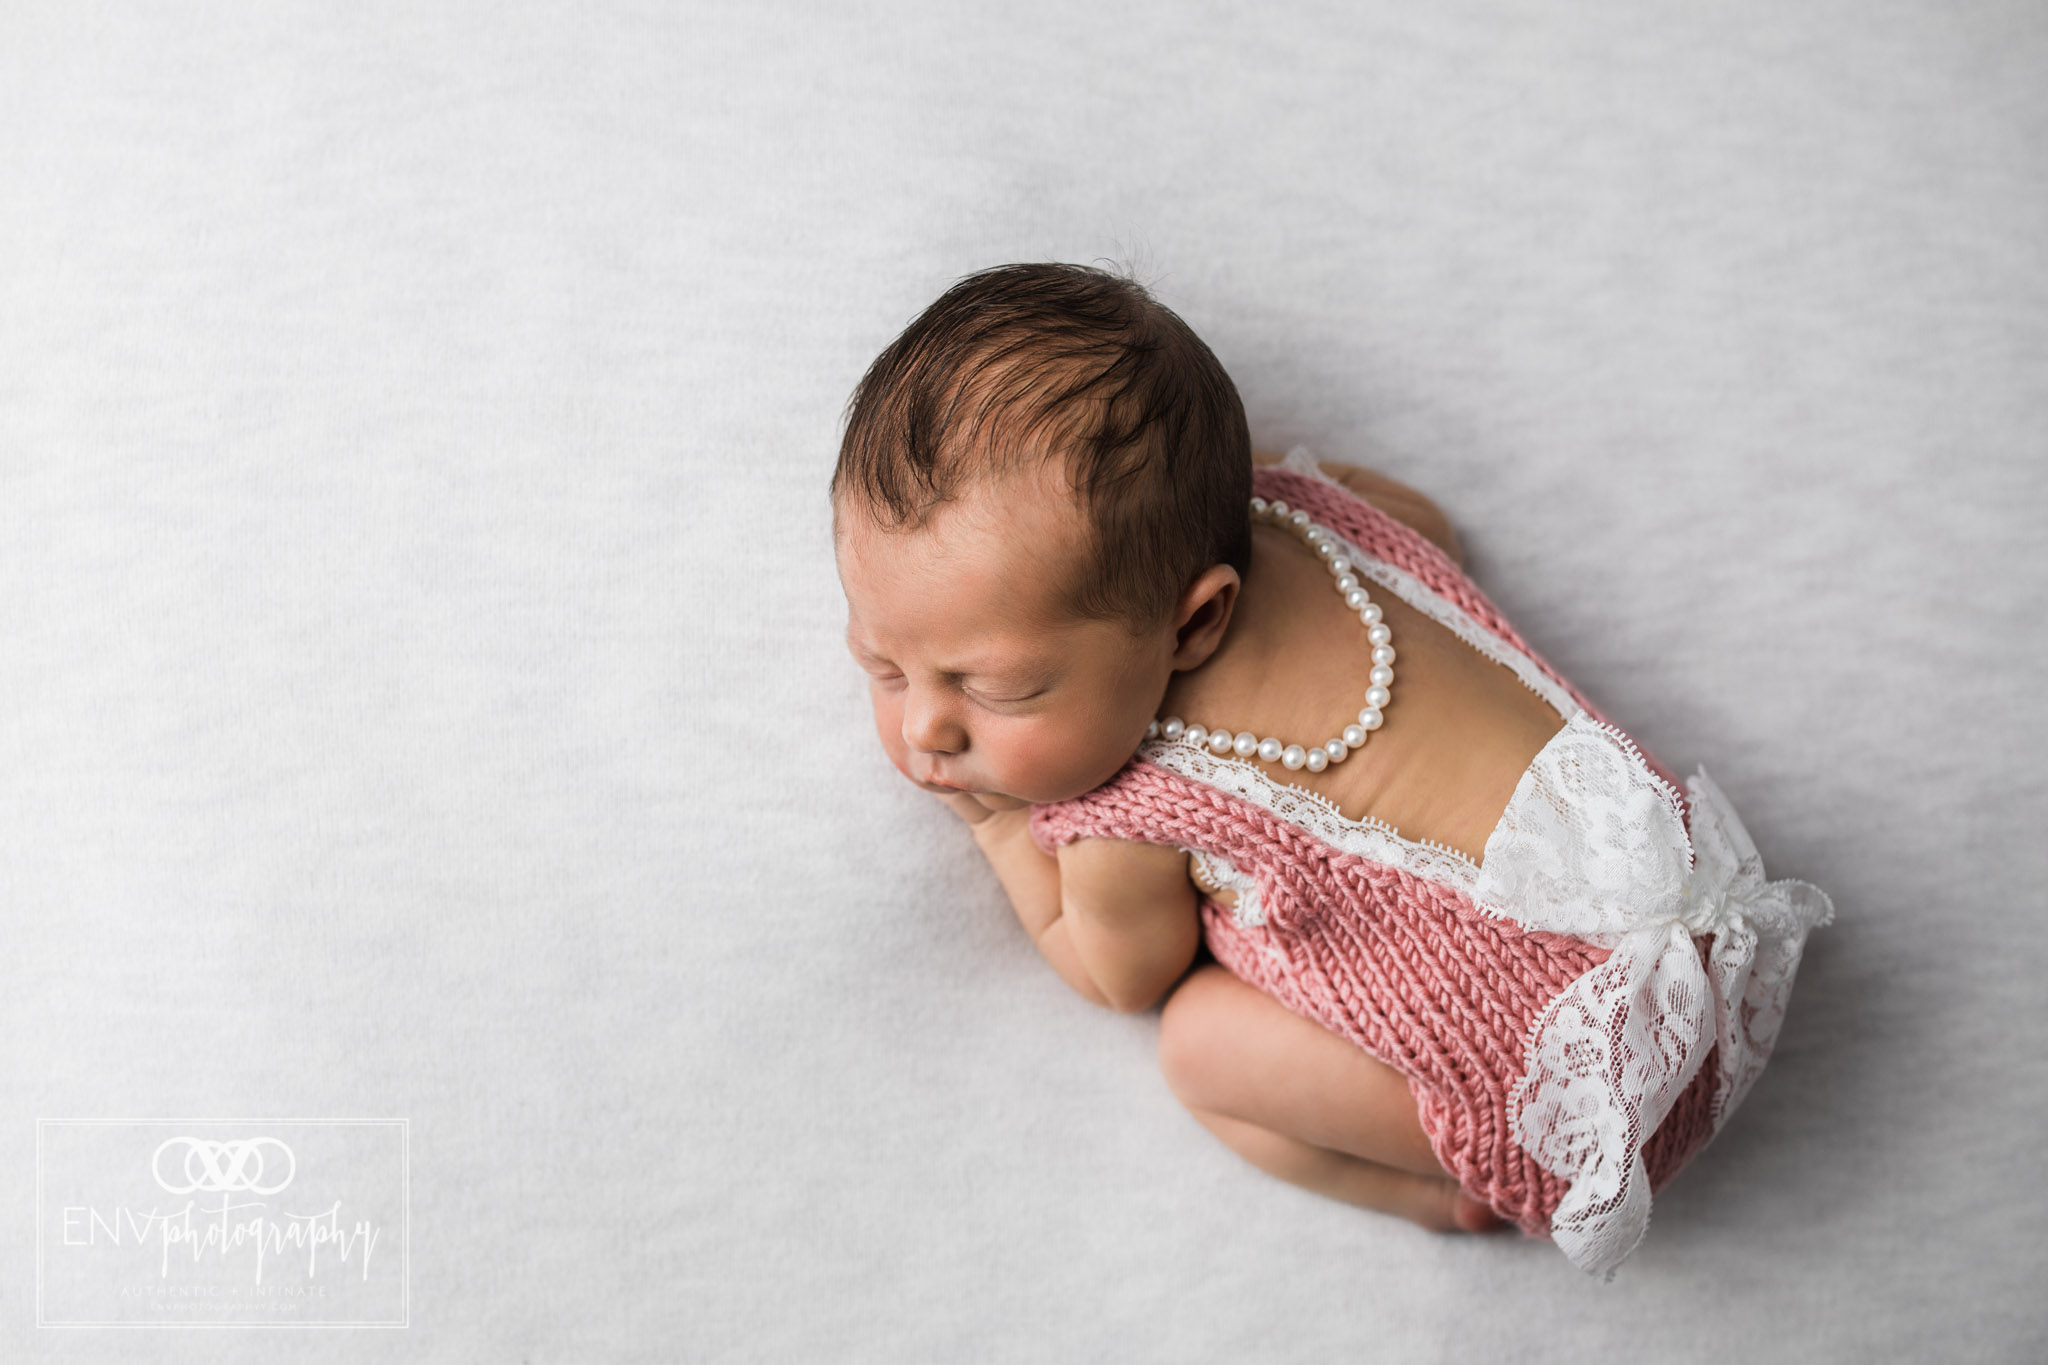 columbus ohio mount vernon ohio newborn photographer (5).jpg